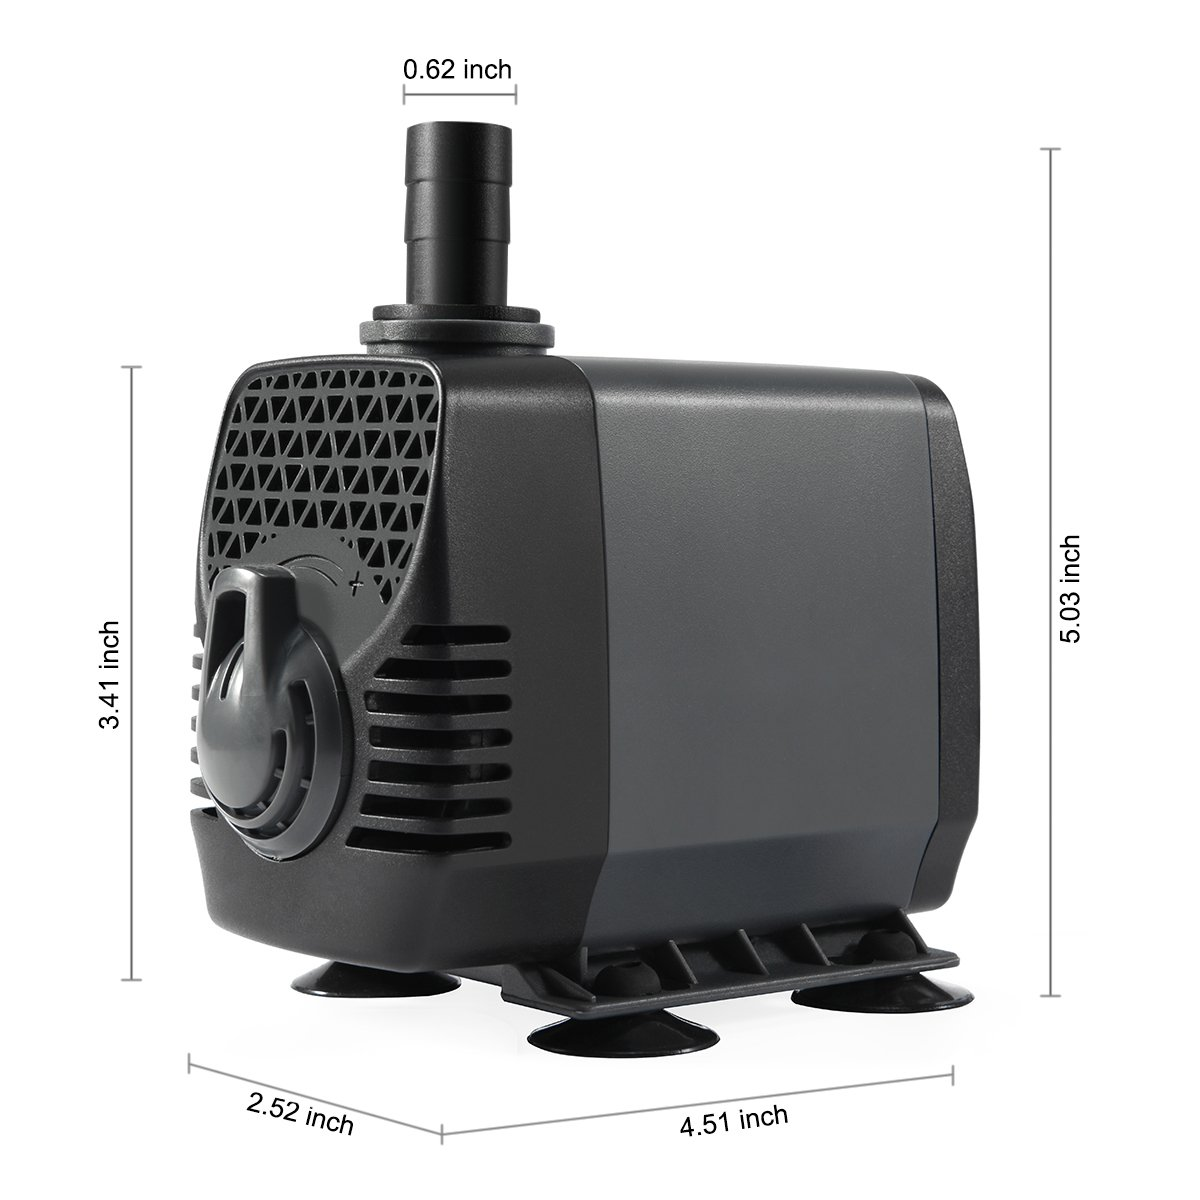 Ankway Upgraded 660GPH(2475L/H, 40W) Submersible Water Pump Humanized Rotation Switch with 3 Nozzles for Pond, Aquarium, Fish Tank Fountain Water Pump Hydroponics, with 5.9ft (1.8M) Power Cord by Ankway (Image #4)